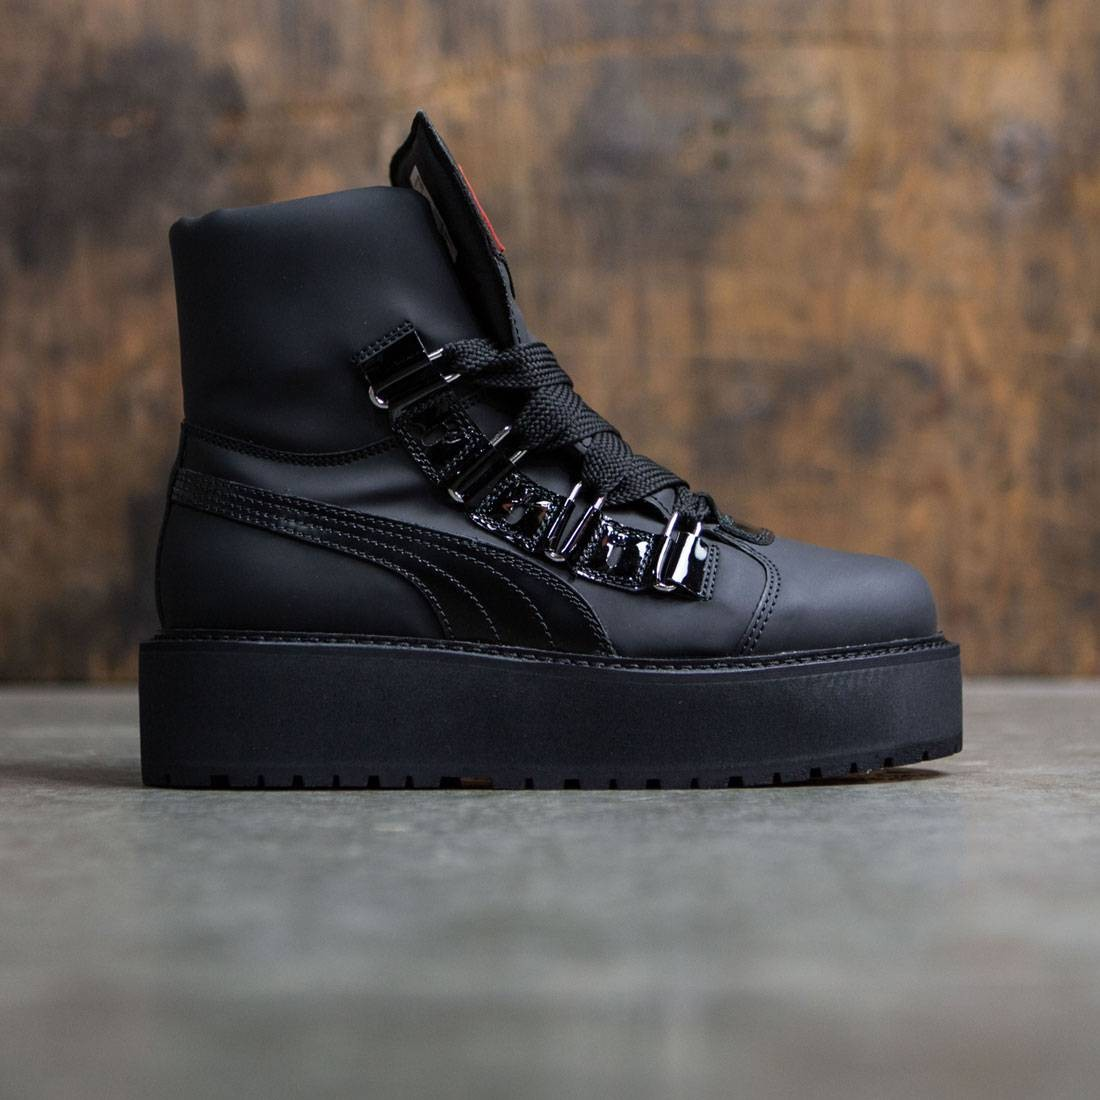 rihanna puma shoes for men